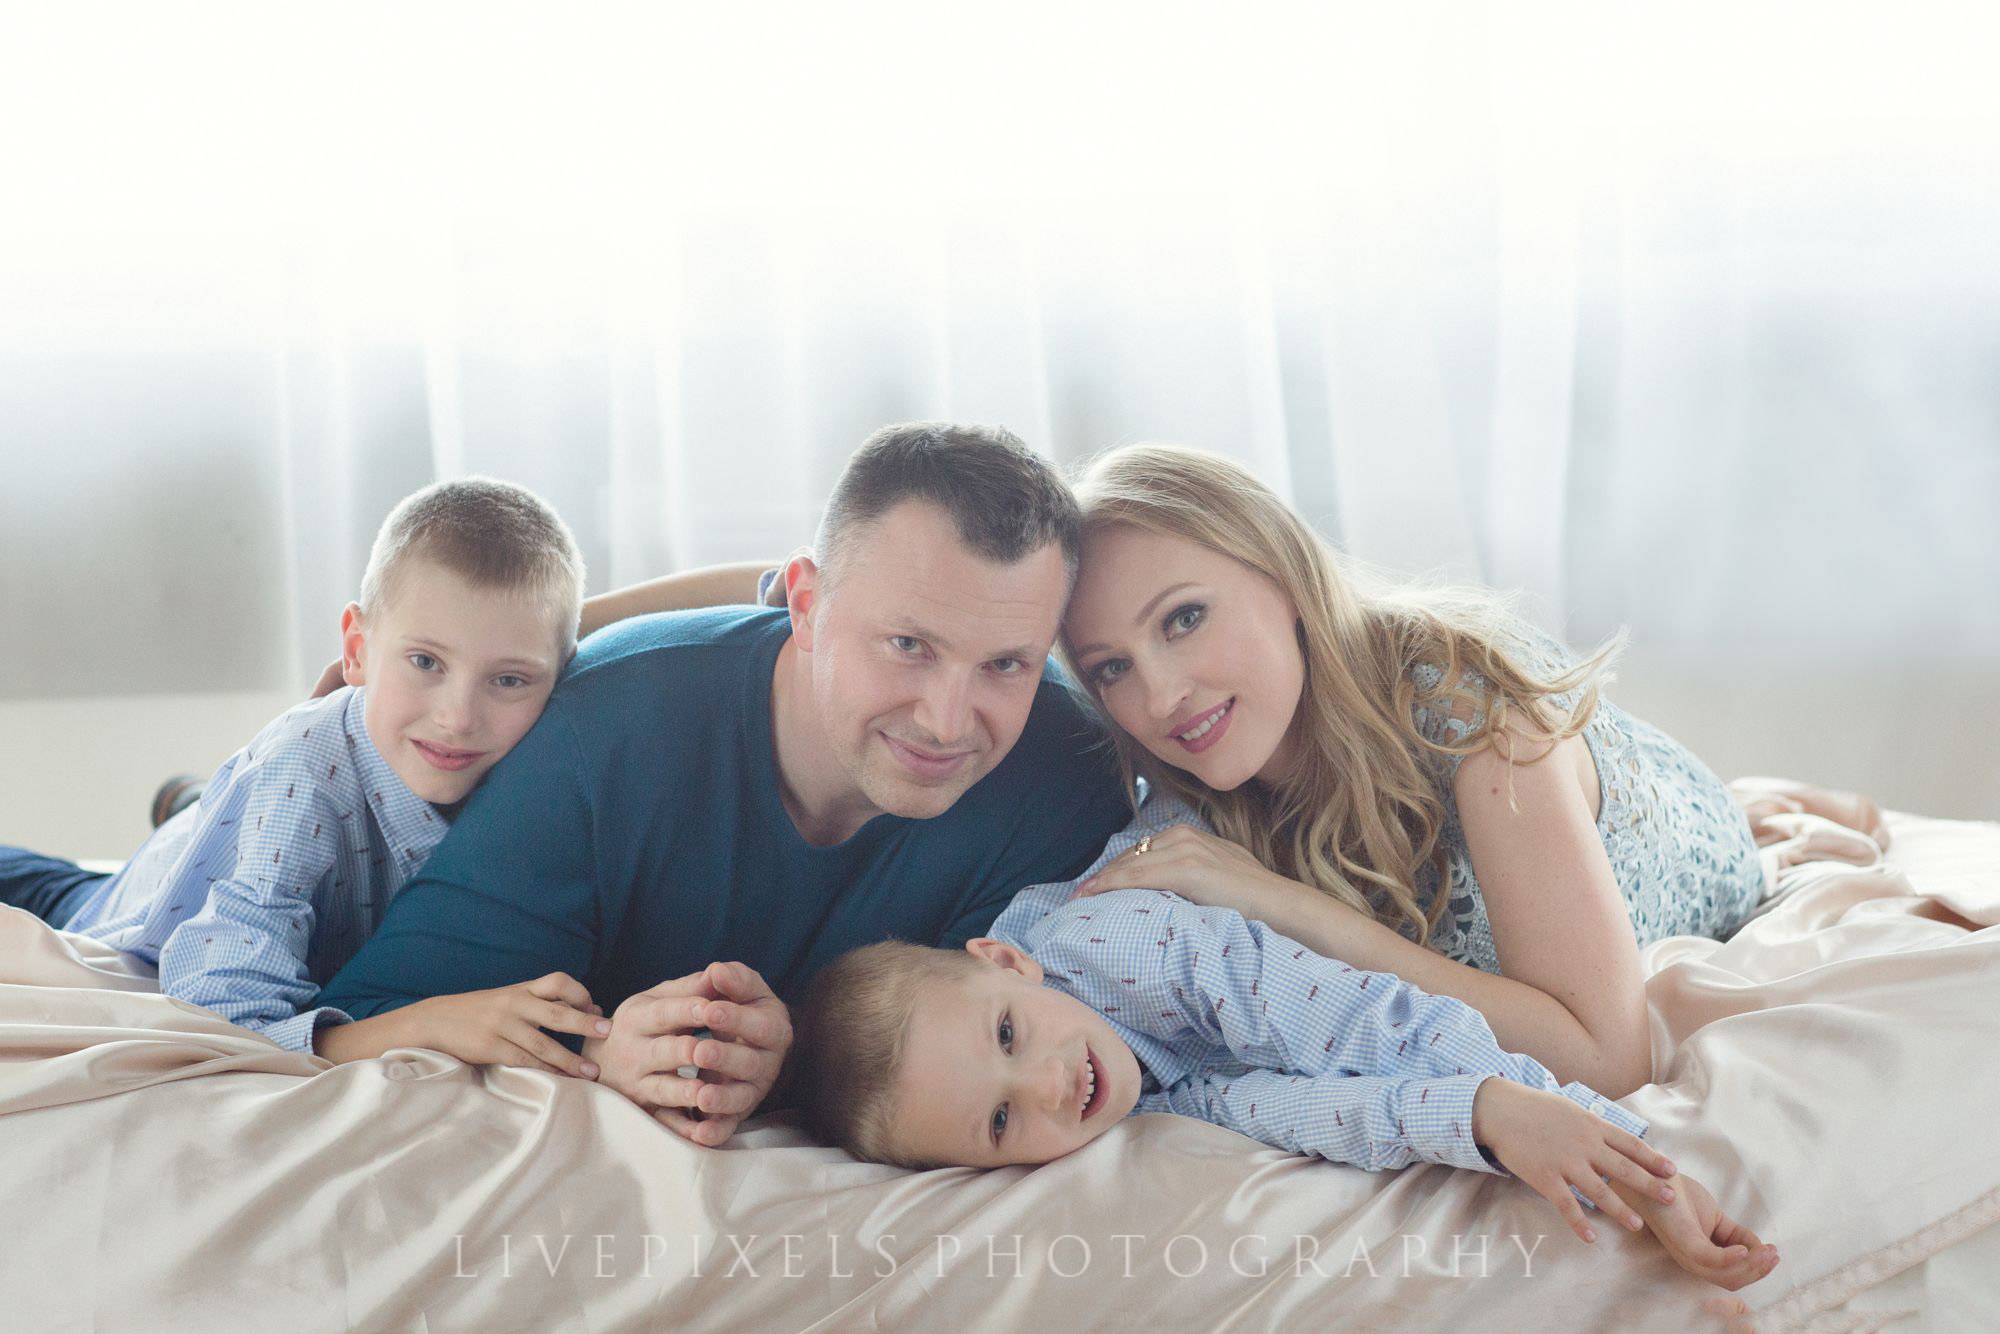 Family Studio Portrait Photography - Livepixels Photography, Toronto / livepixelsphotograp